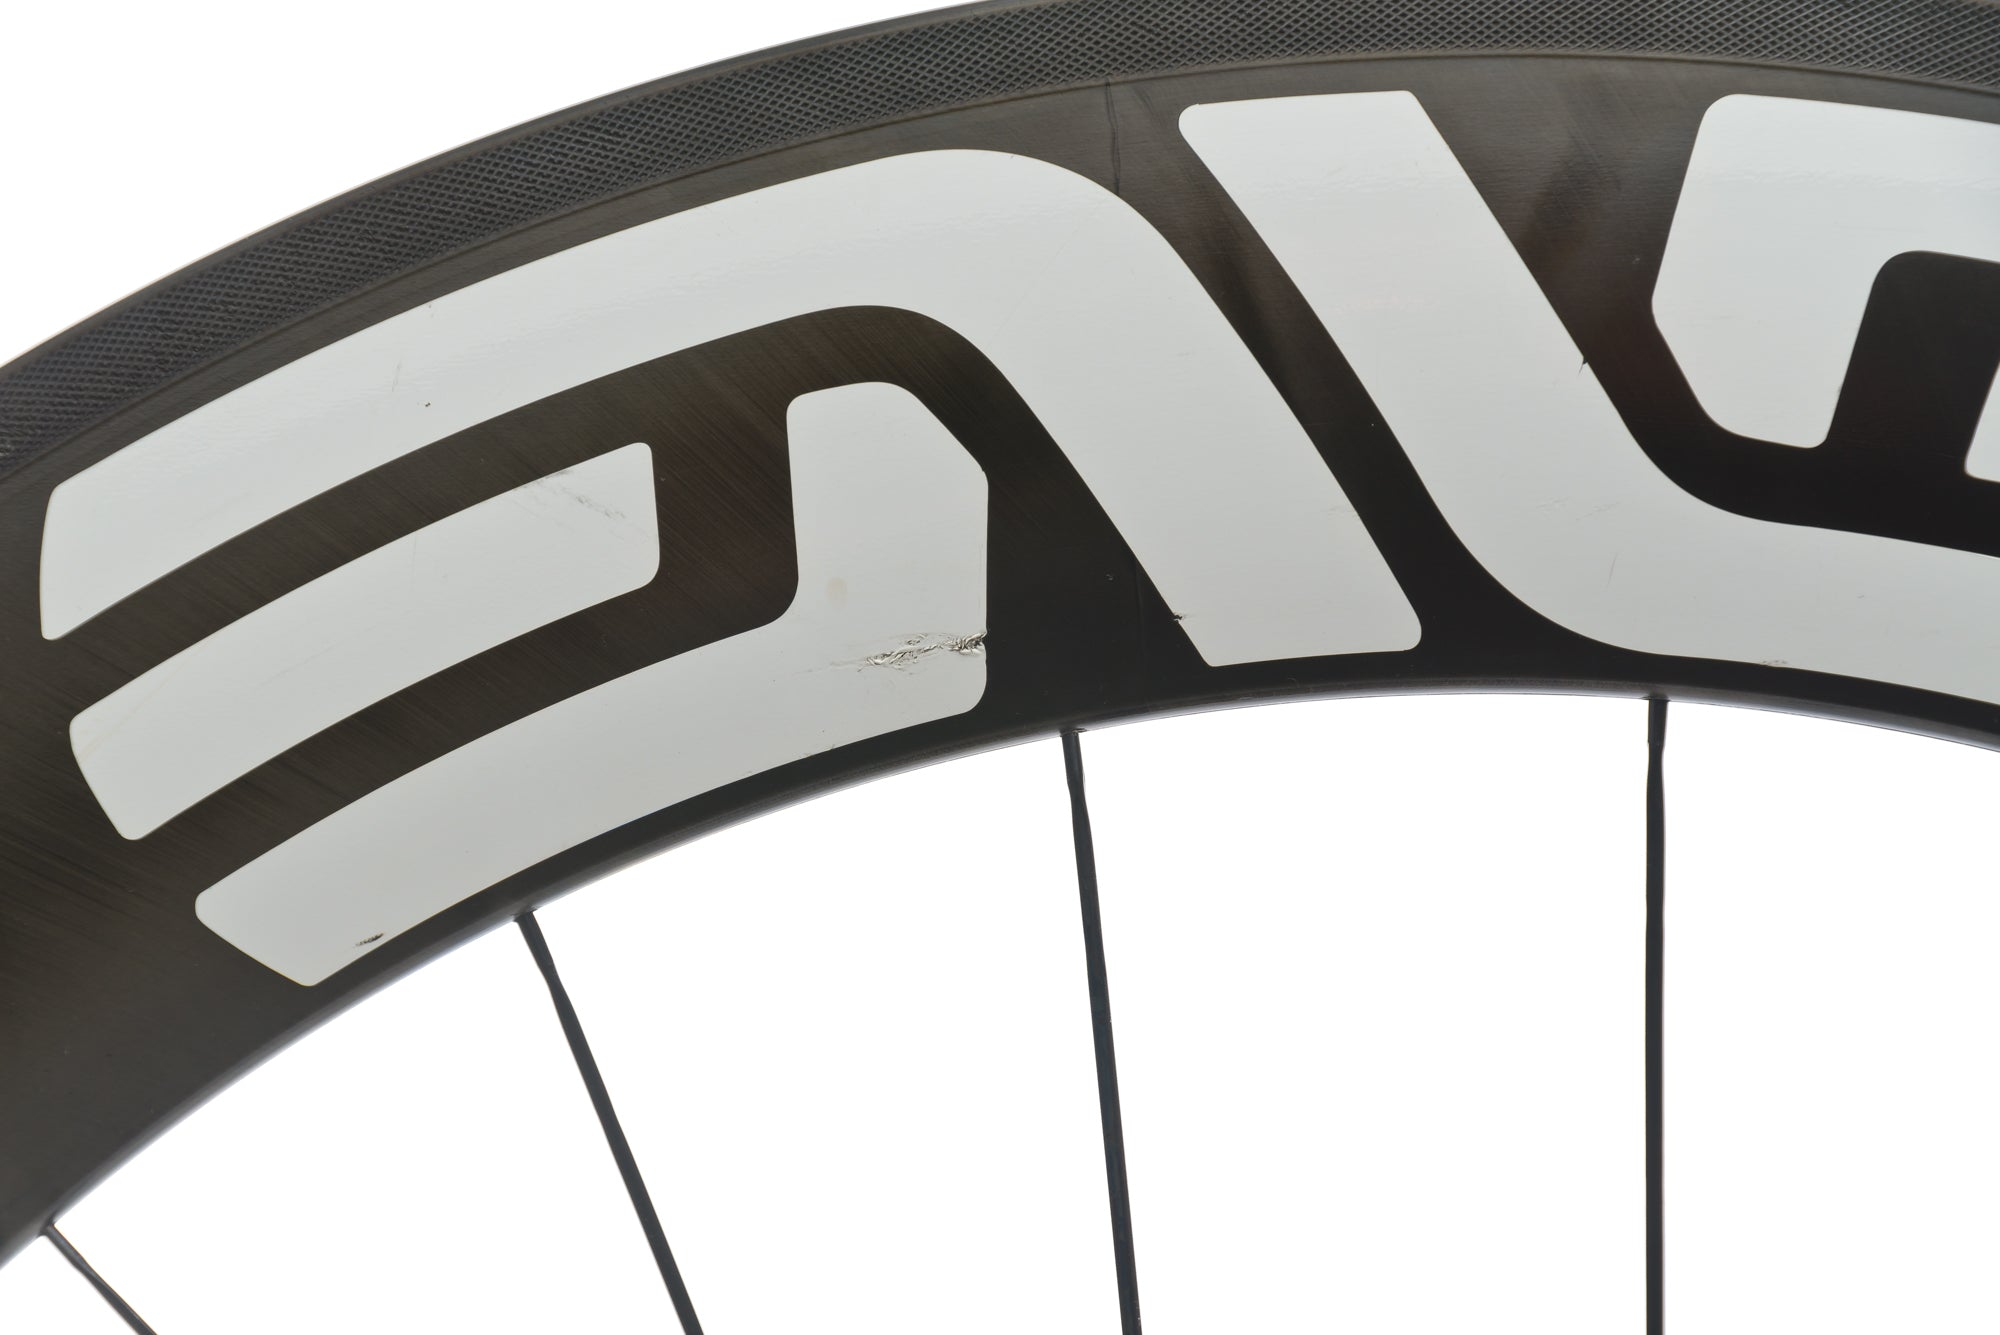 Enve SES 7.8 Carbon Clincher 700c Wheelset detail 2